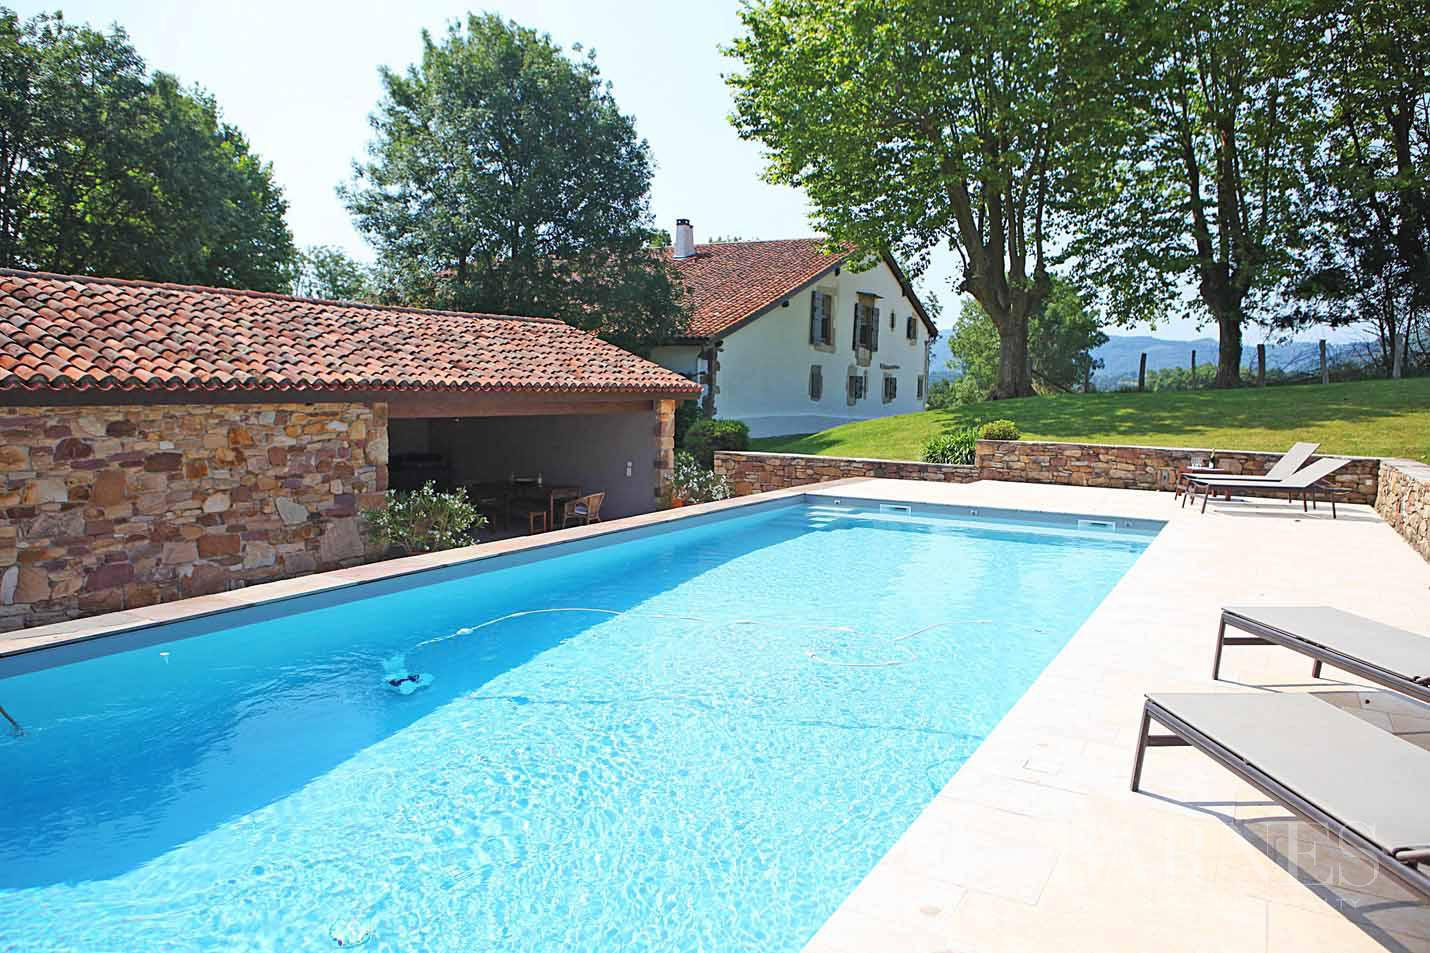 SARE, 20 MINUTES FROM SAINT JEAN DE LUZ, BASQUE STYLE FARMHOUSE WITH HEATED POOL, PANORAMIC MOUNTAIN VIEW picture 7